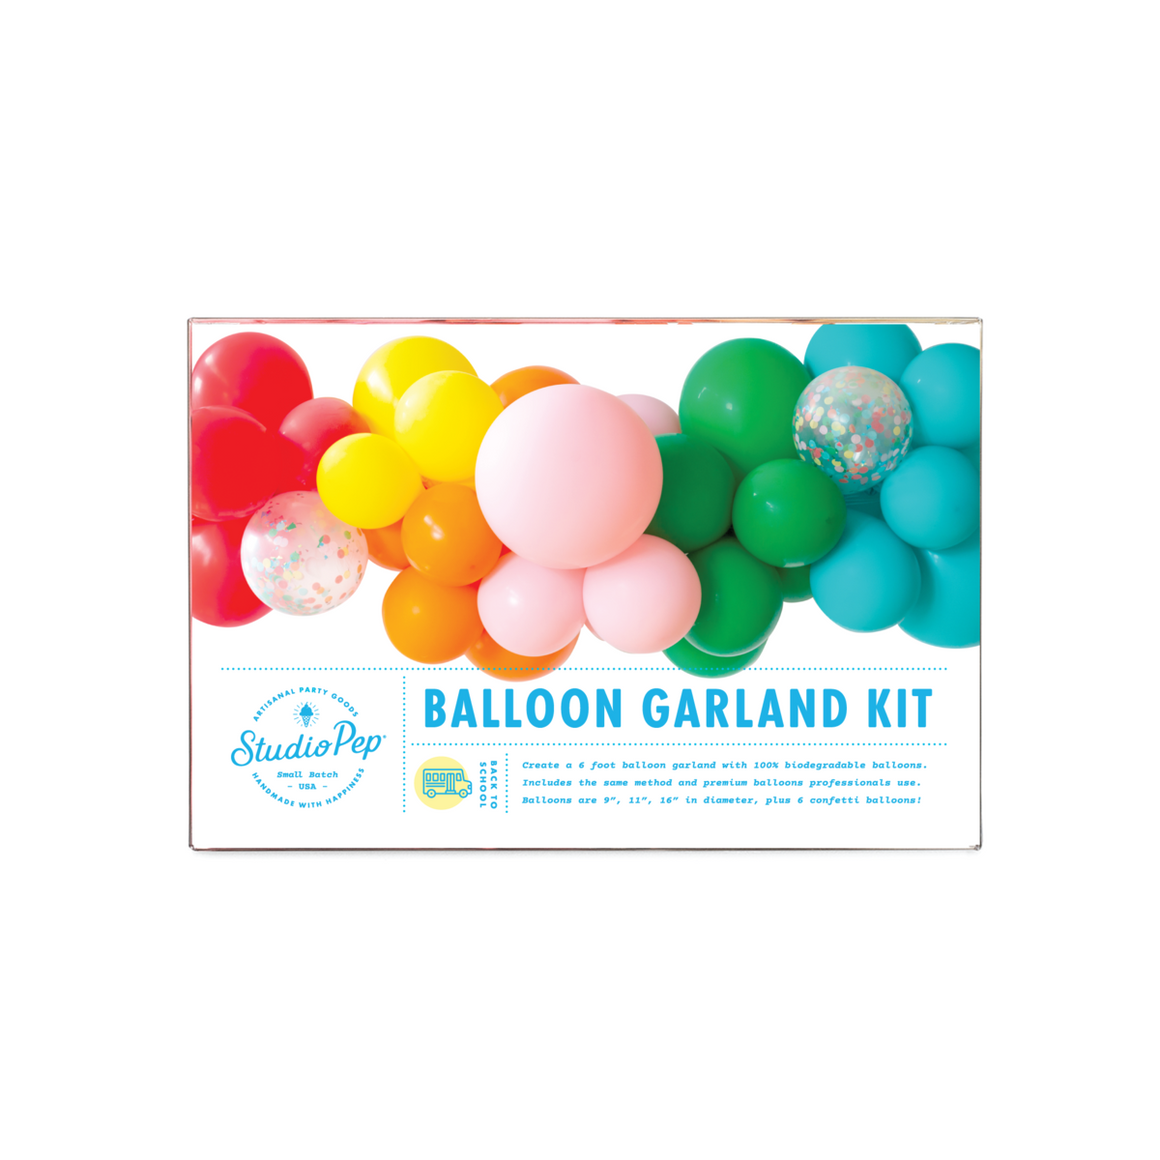 BALLOON GARLAND - BRIGHT STUDIO PEP